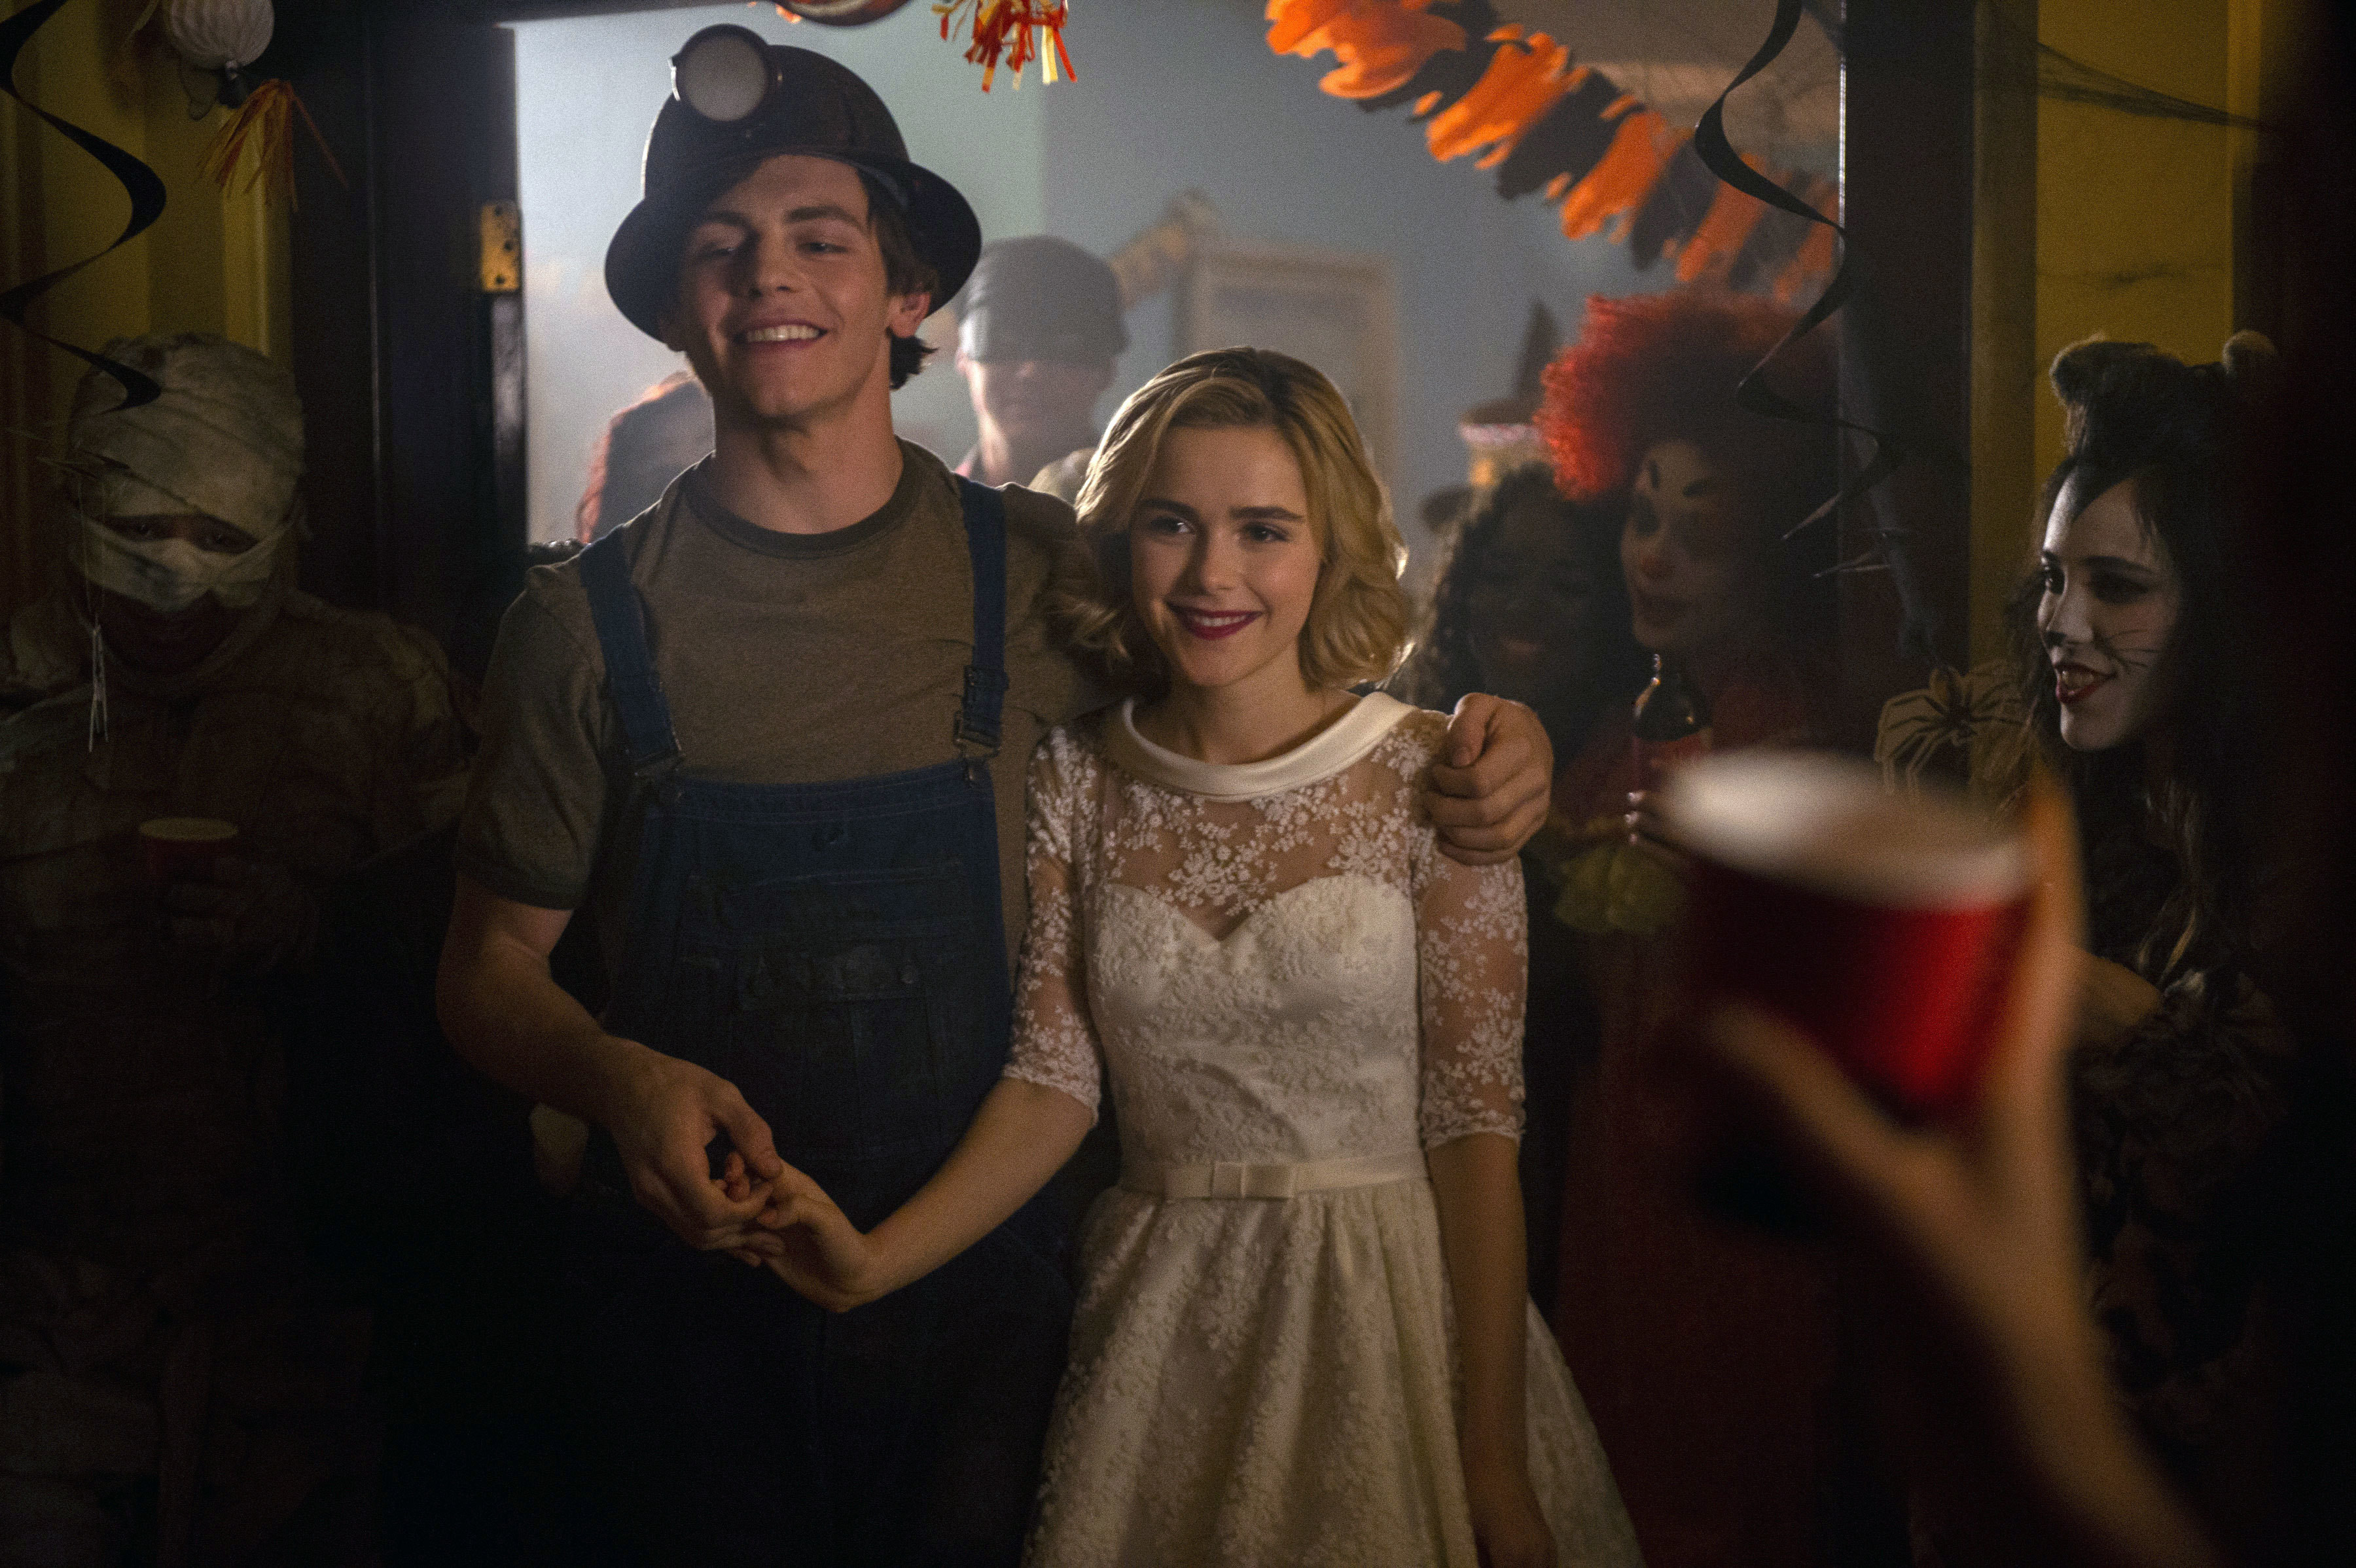 'Chilling Adventures Of Sabrina' Is A Fearless Take On Femininity